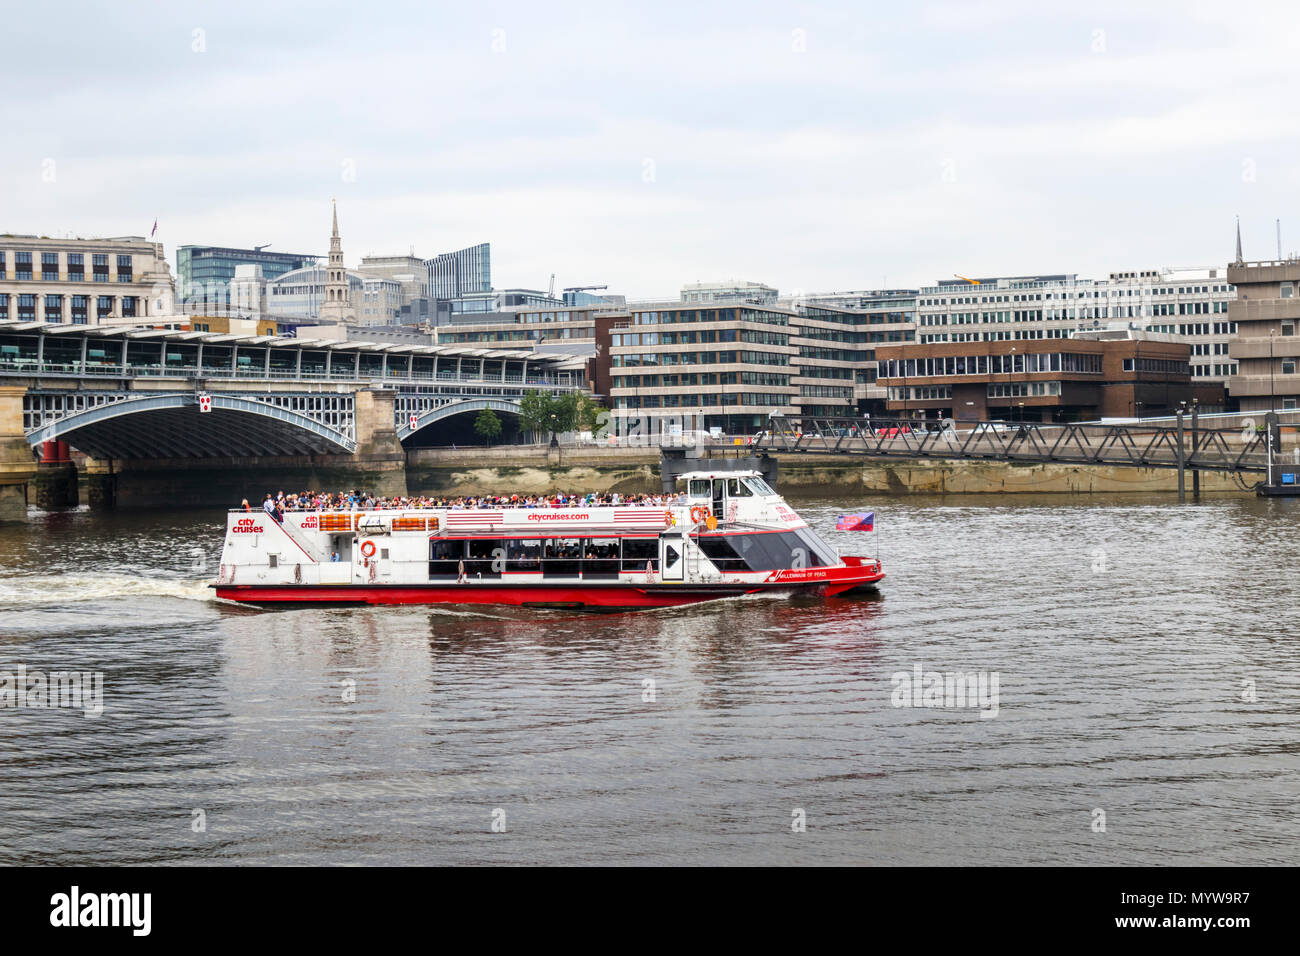 City Cruises riverboat 'Millennium of Peace' sailing past Blackfriars Bridge on a tourist sighseeing cruise tour on the River Thames, London - Stock Image